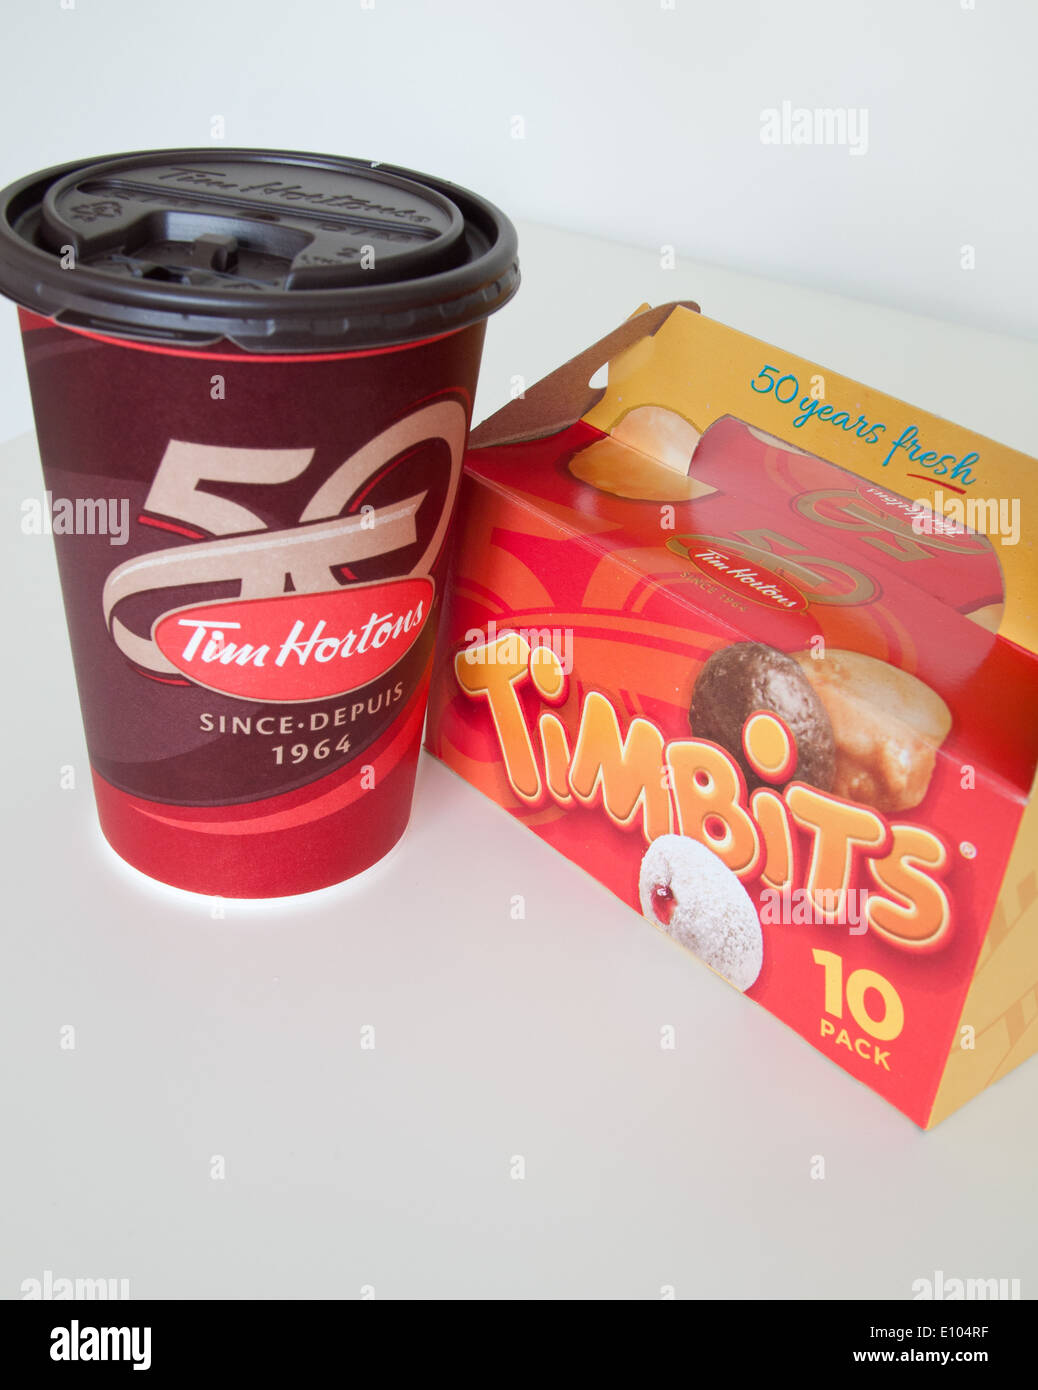 Tim Hortons Coffee Maker Manual : A Tim Hortons coffee cup and Timbits (doughnut holes, donut holes Stock Photo, Royalty Free ...